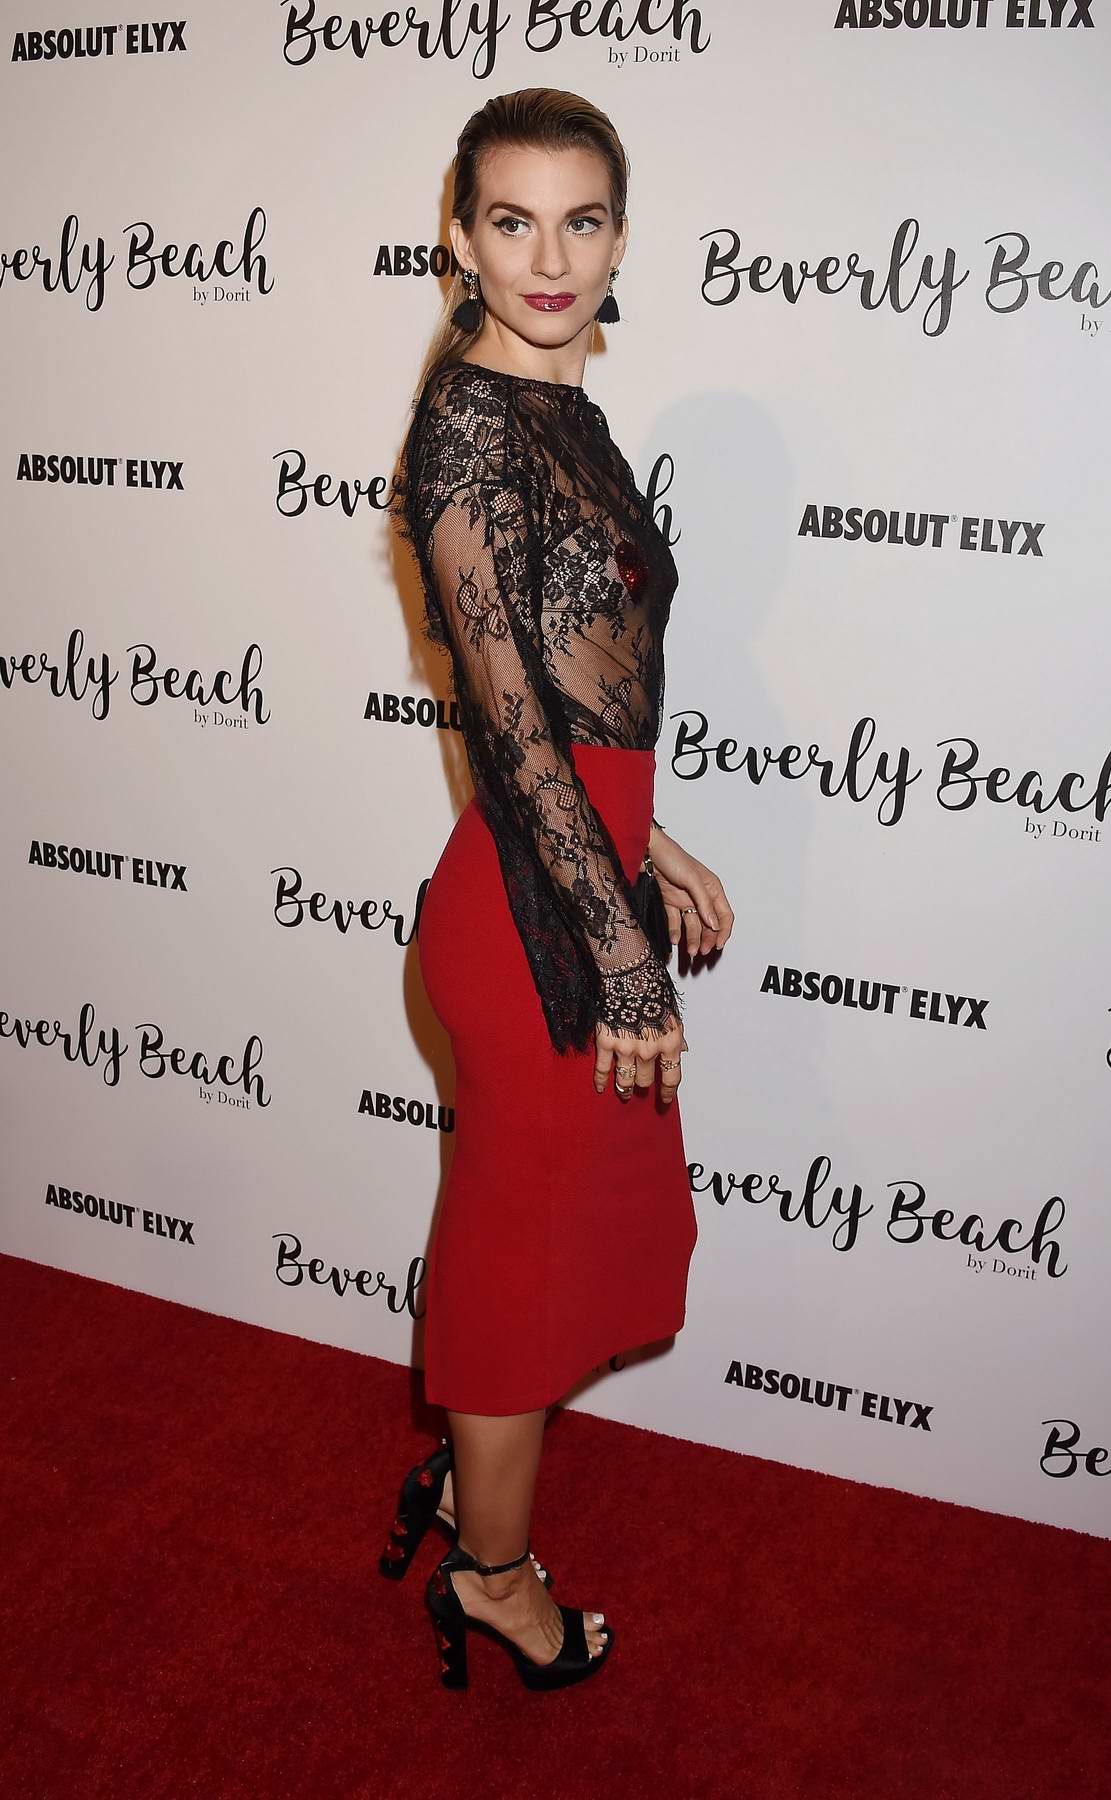 Rachel McCord at Dorit Kemsley hosts preview event for Beverly Beach by Dorit at The Trunk Club in Culver City, Los Angeles